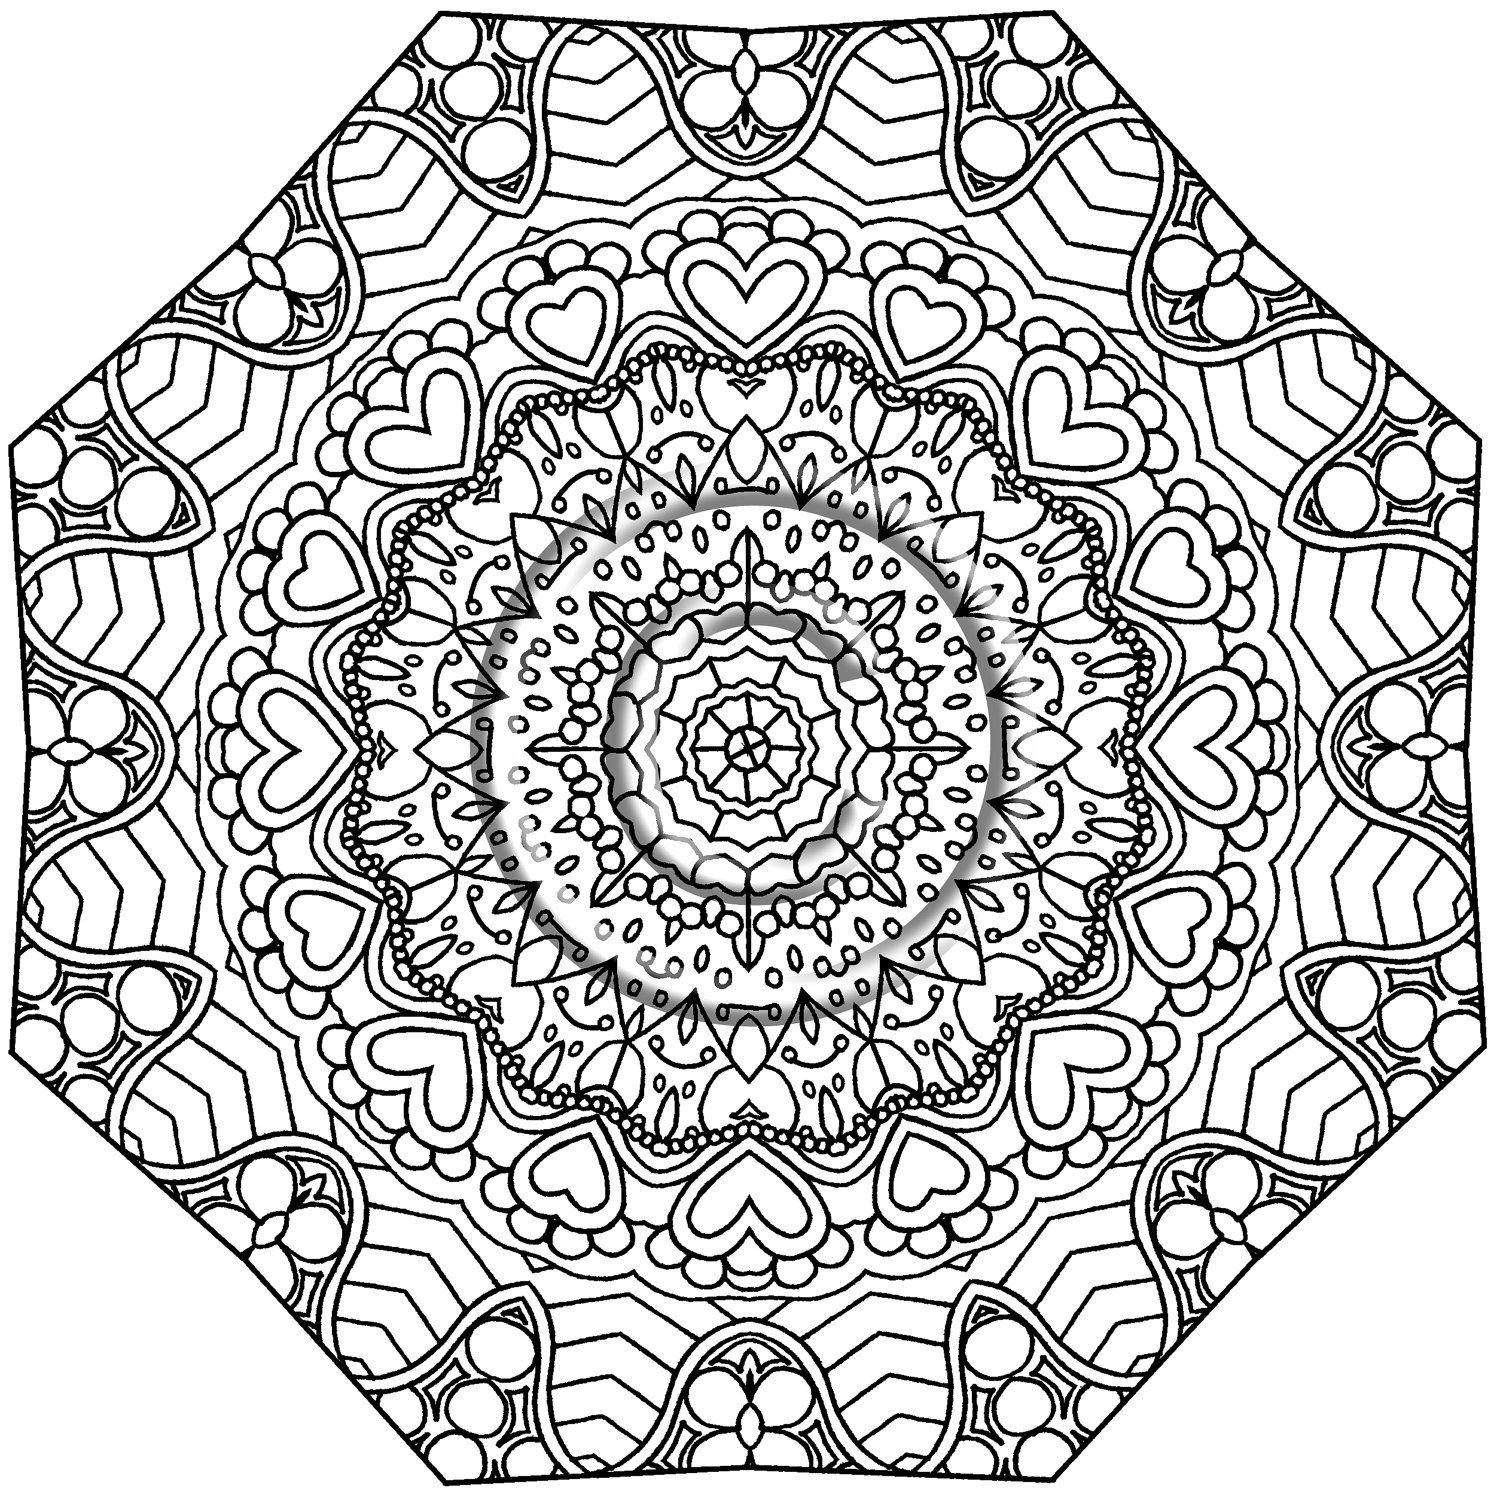 Printable Download Coloring Page Hand Drawn Zentangle Inspired Abstract Zendoodle Mandala Lin Abstract Coloring Pages Art Therapy Coloring Book Coloring Pages